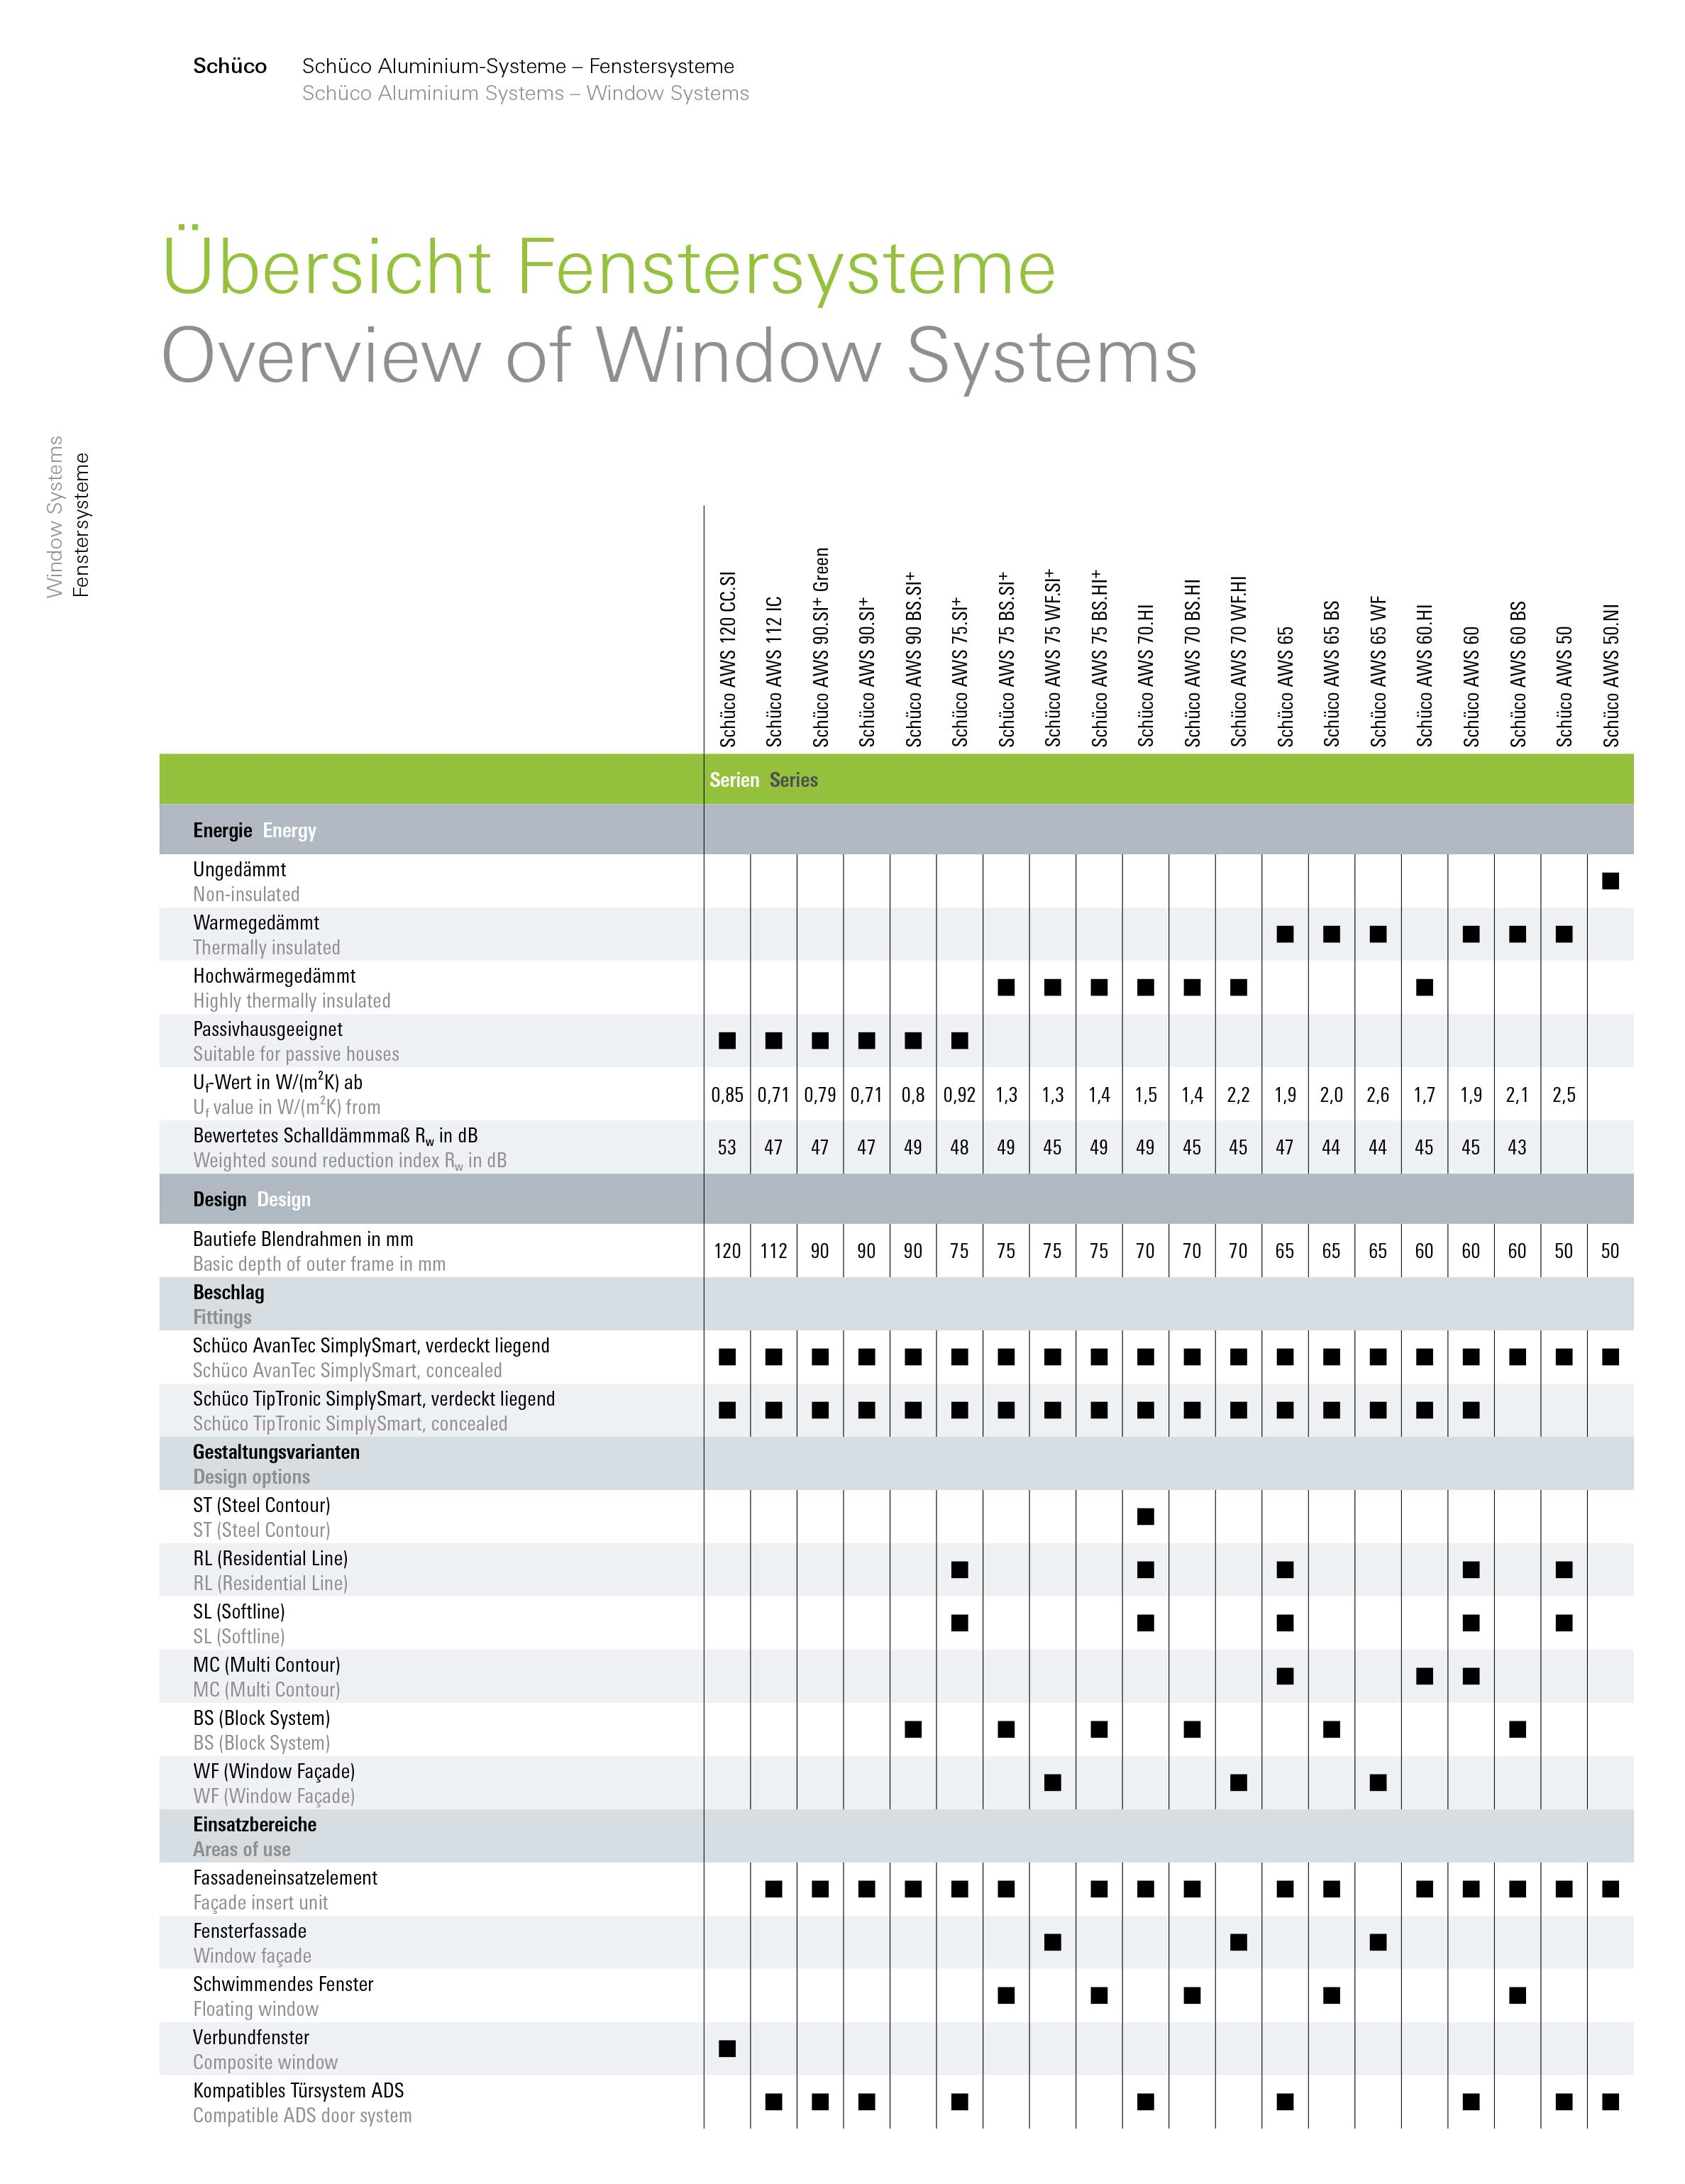 Overview-of-Window-Systems